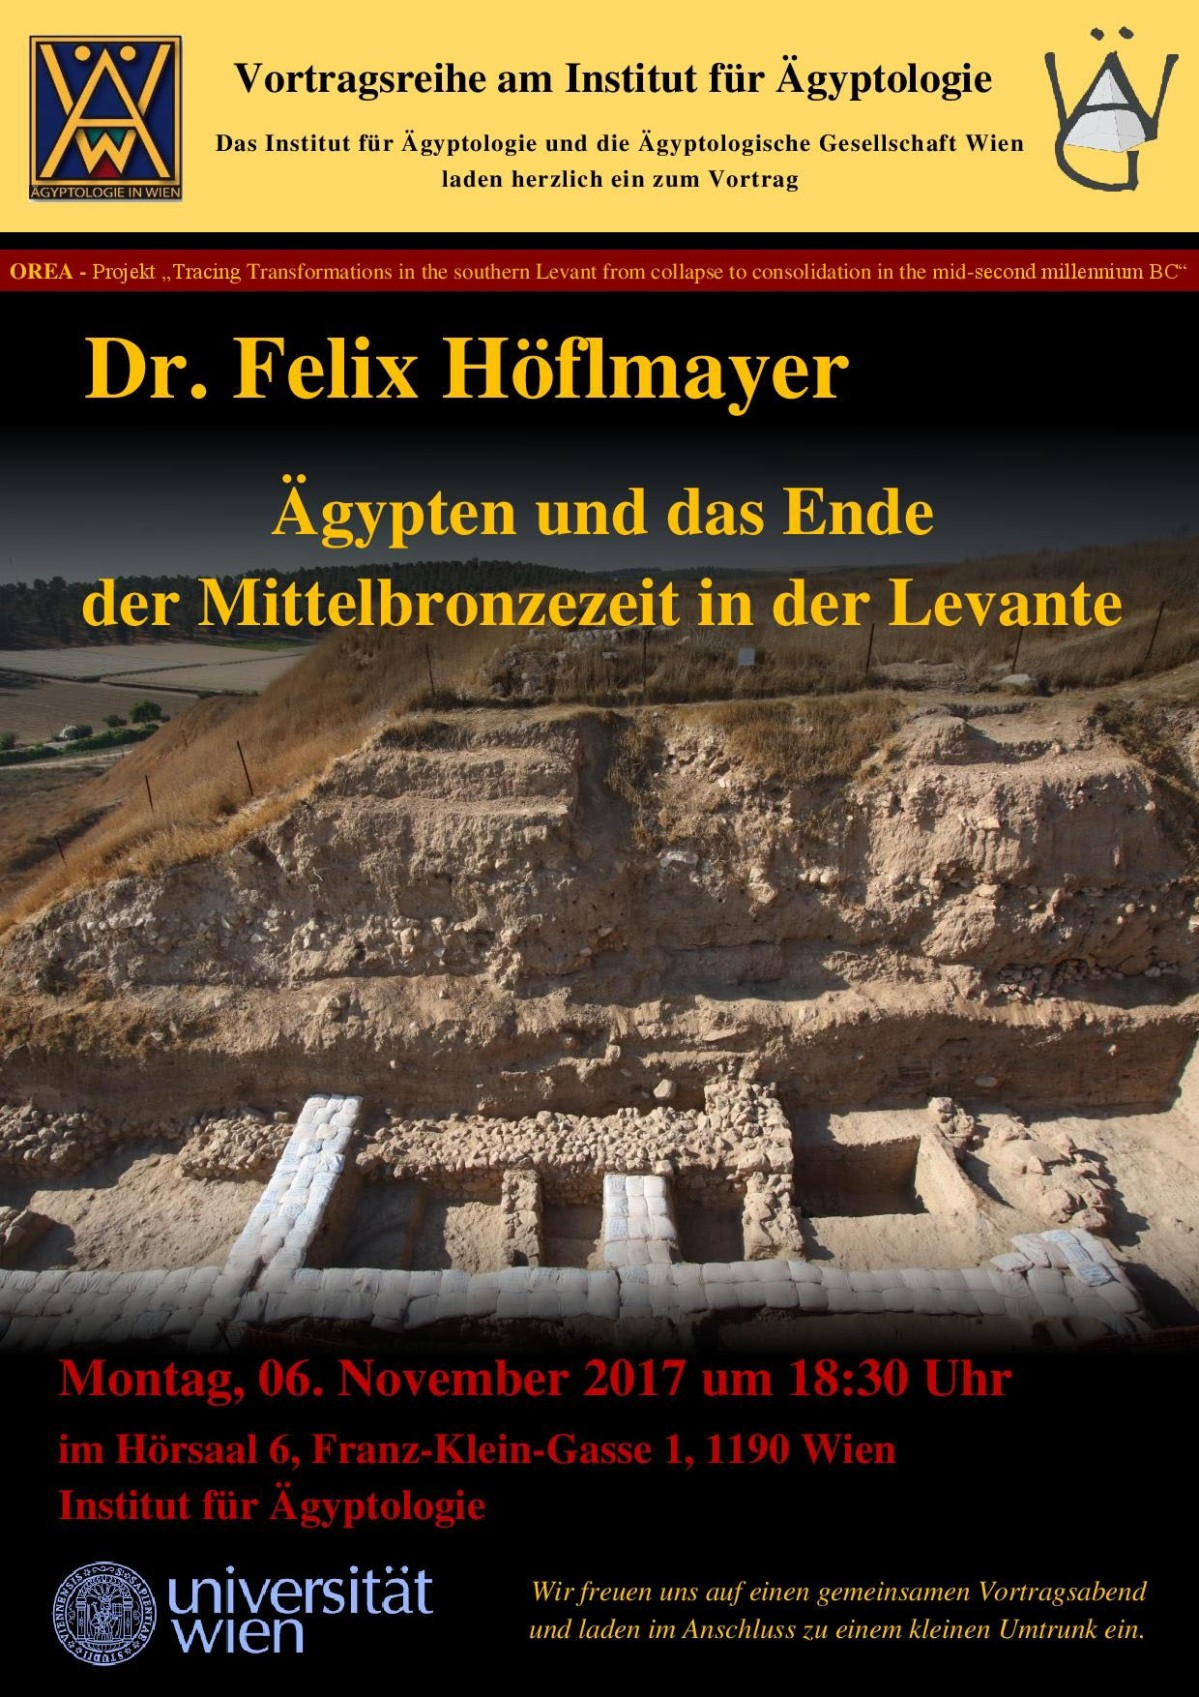 Lecture by Felix Höflmayer on Egypt and the end of the Middle Bronze Age in the Levant